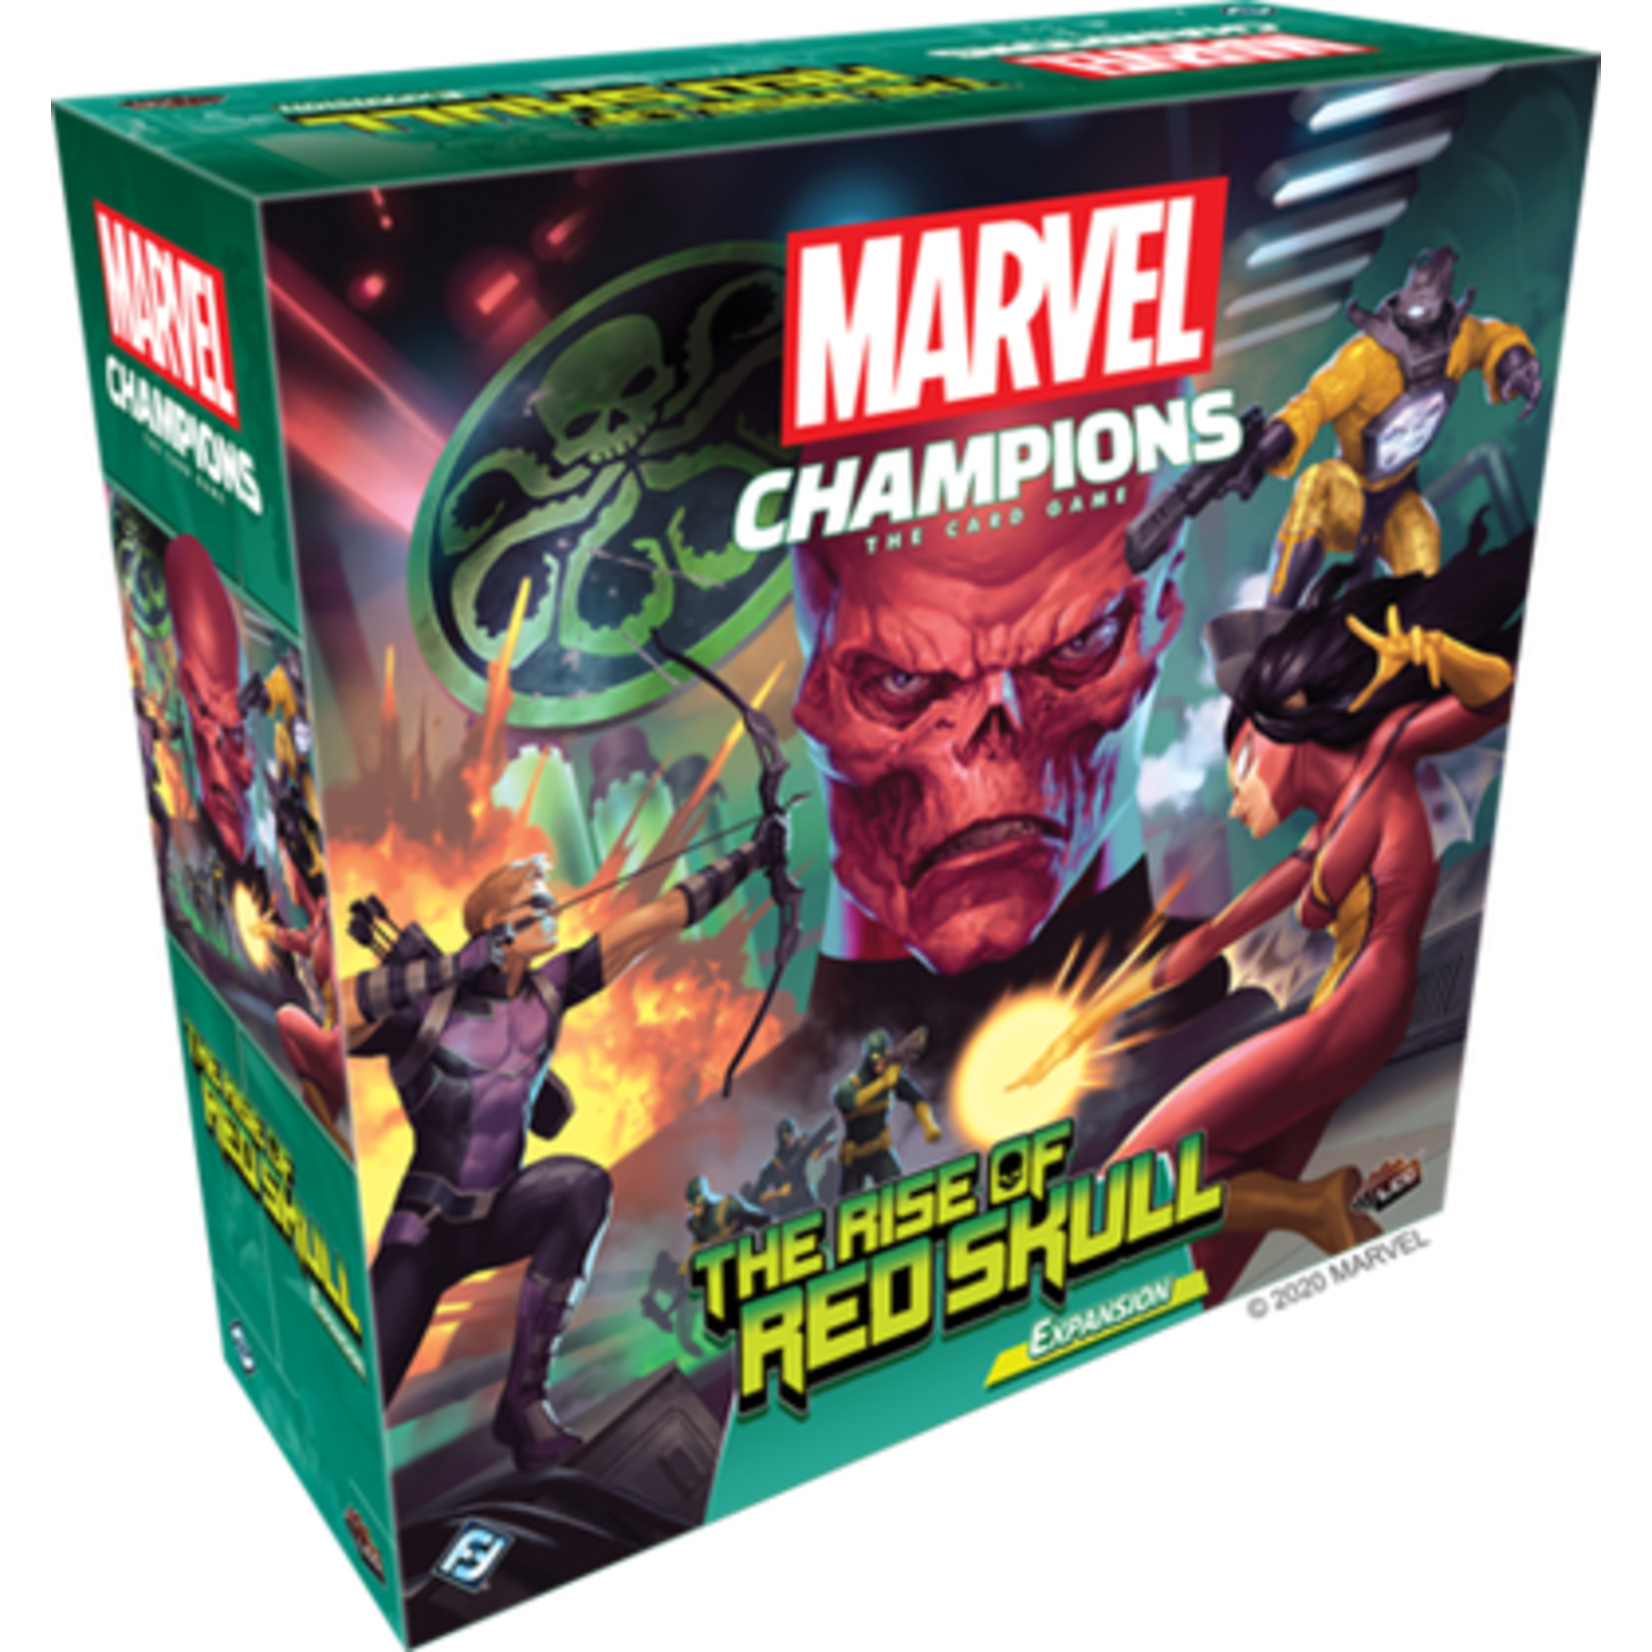 Marvel Champions Living Card Game: The Rise of Red Skull